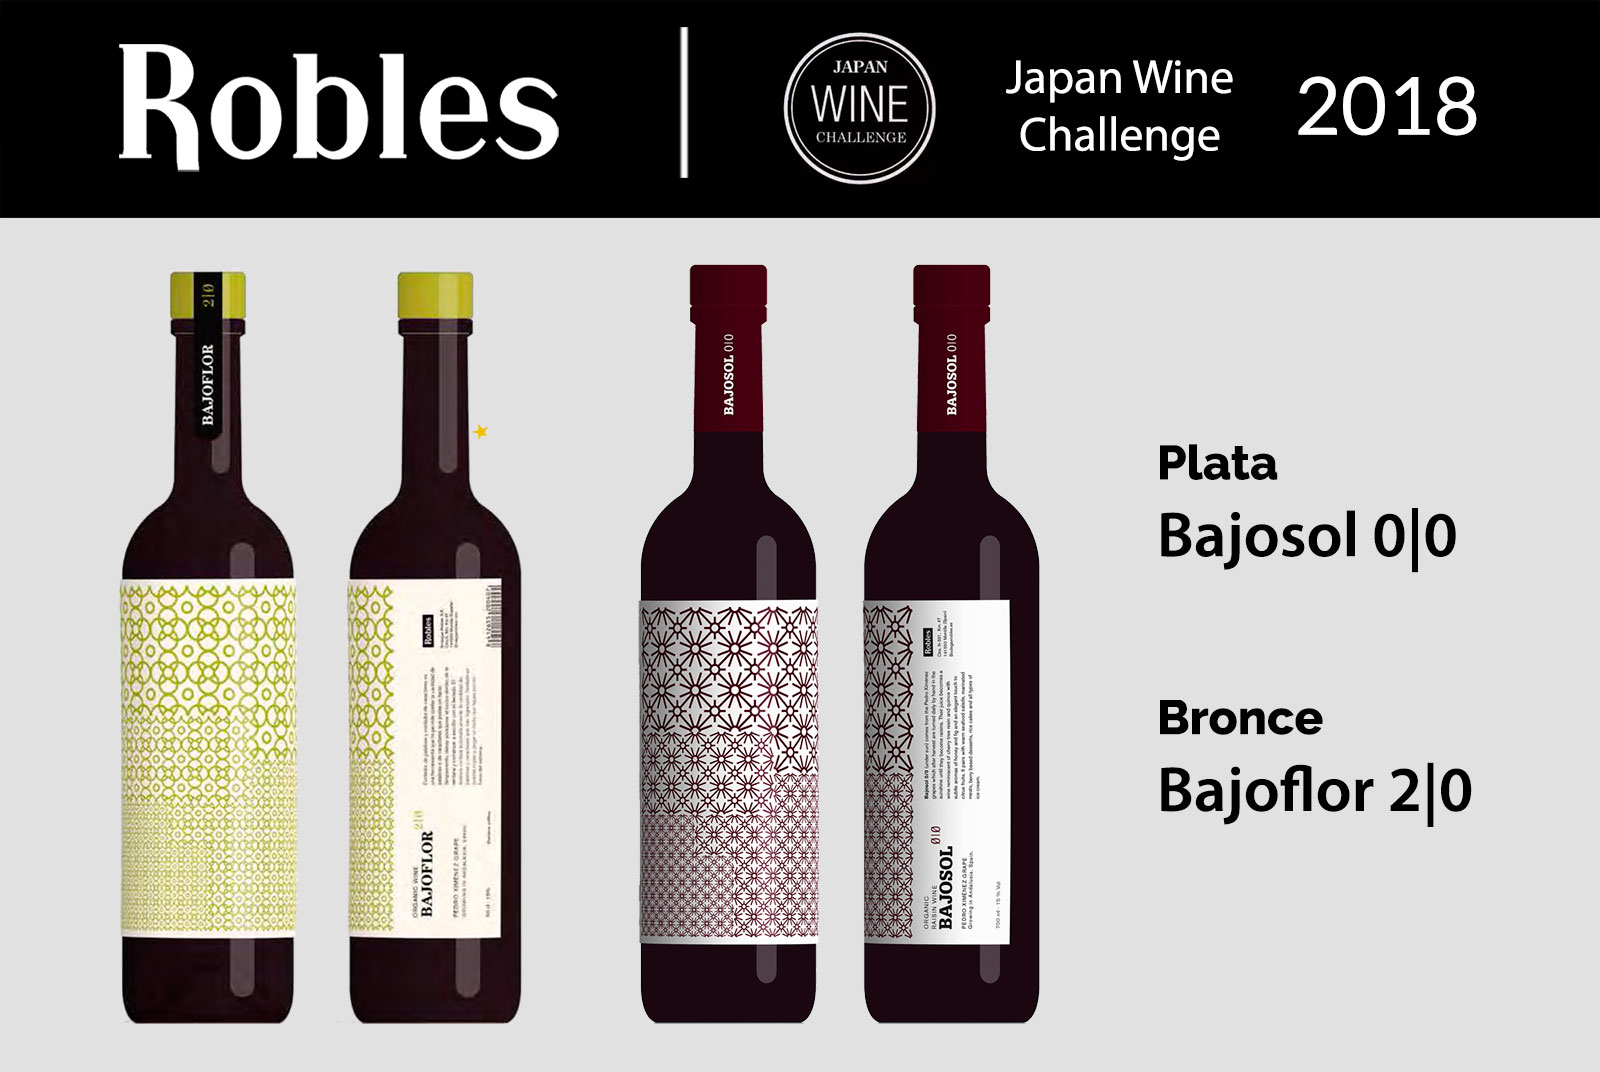 Bajoflor continues its road in Japan